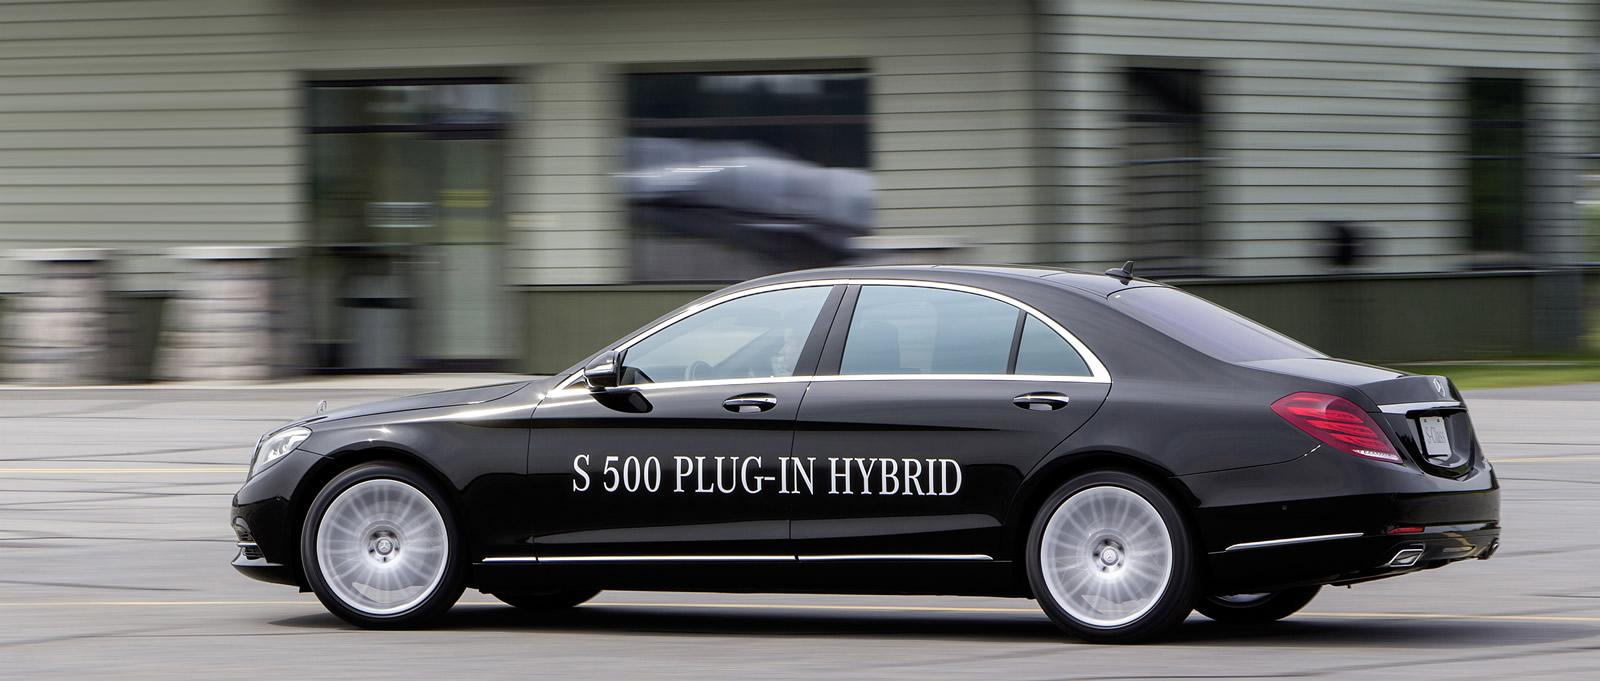 Ahead of its launch in September, new deMercedes-Benz S500 Plug-in Hybrid